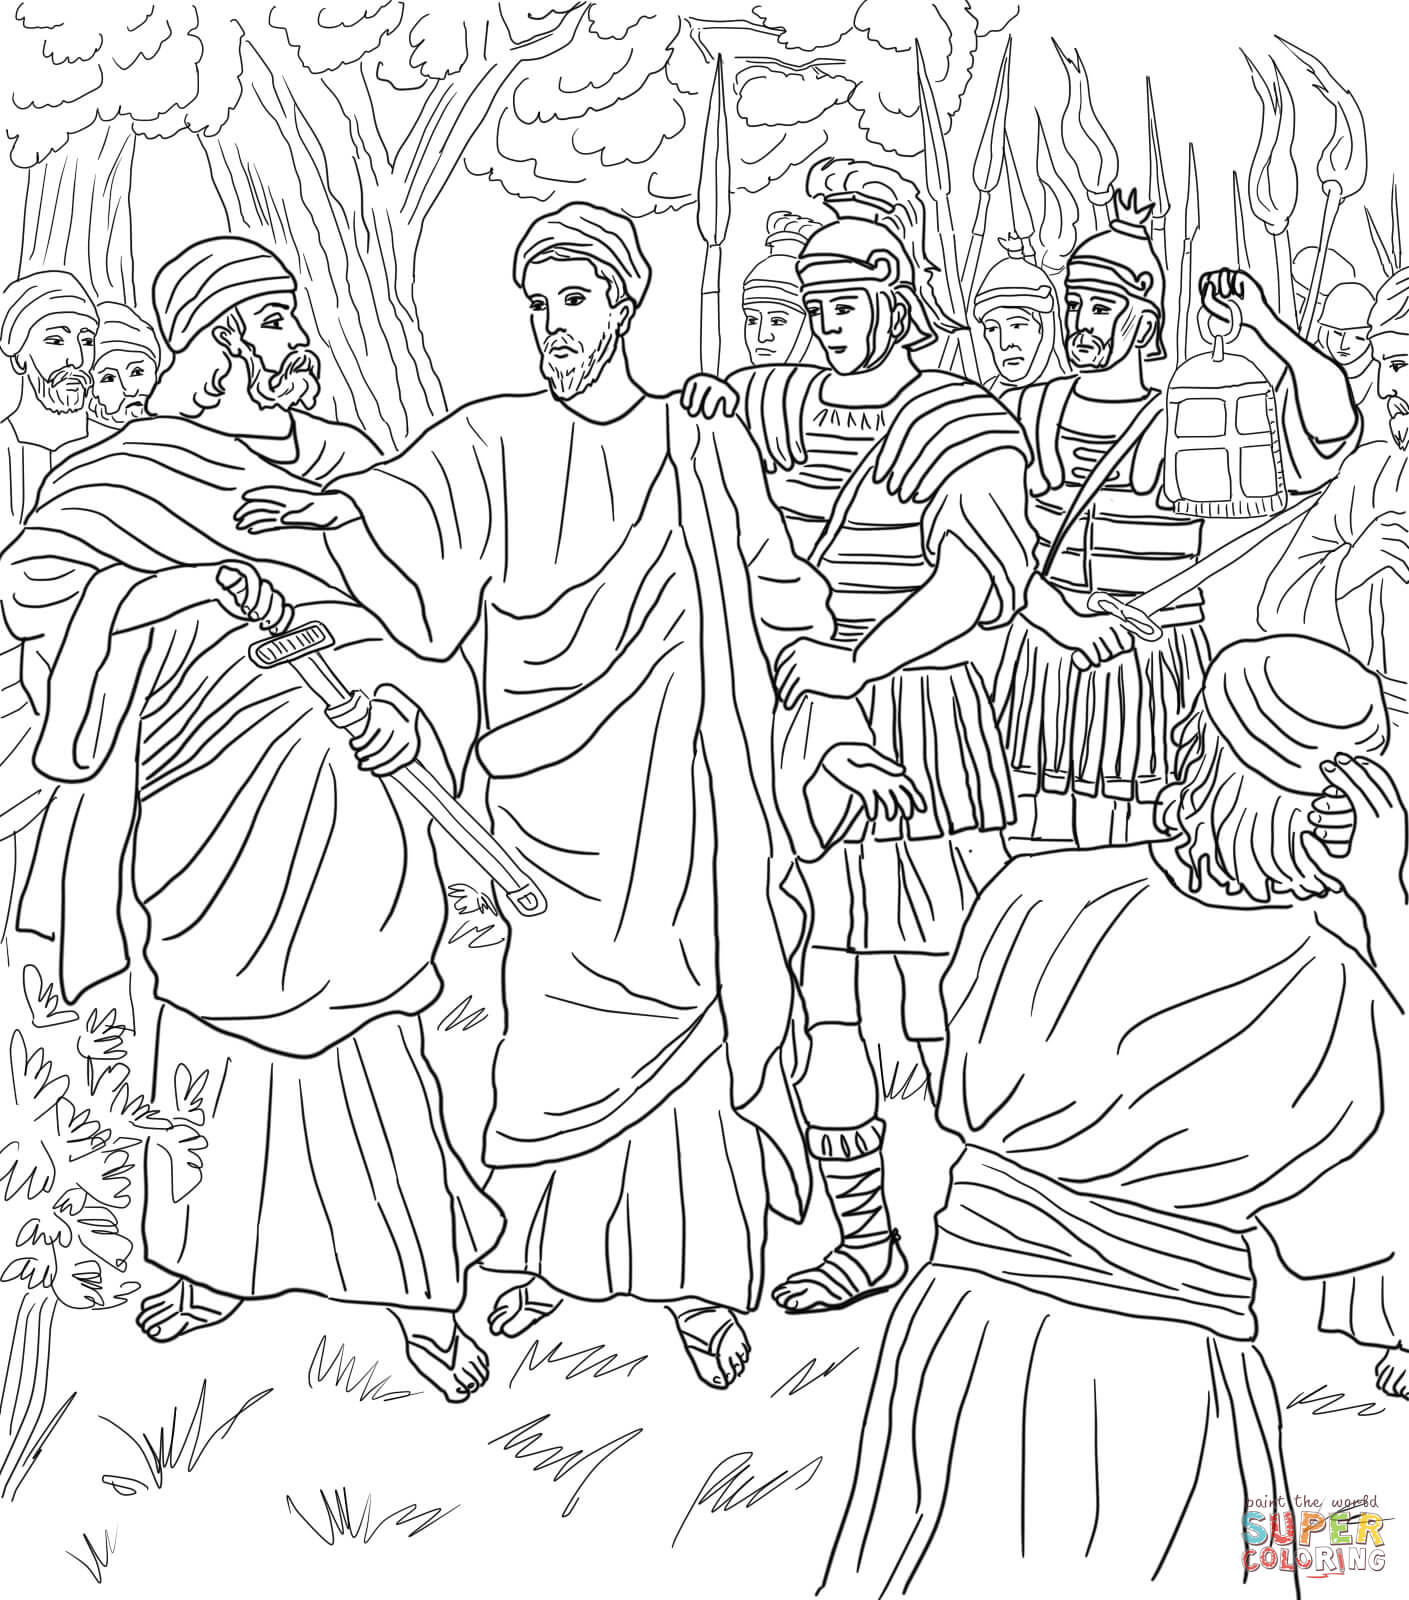 jesus in the garden of gethsemane coloring page the prayer of jesus in the gethsemane garden coloring in the gethsemane of jesus coloring garden page